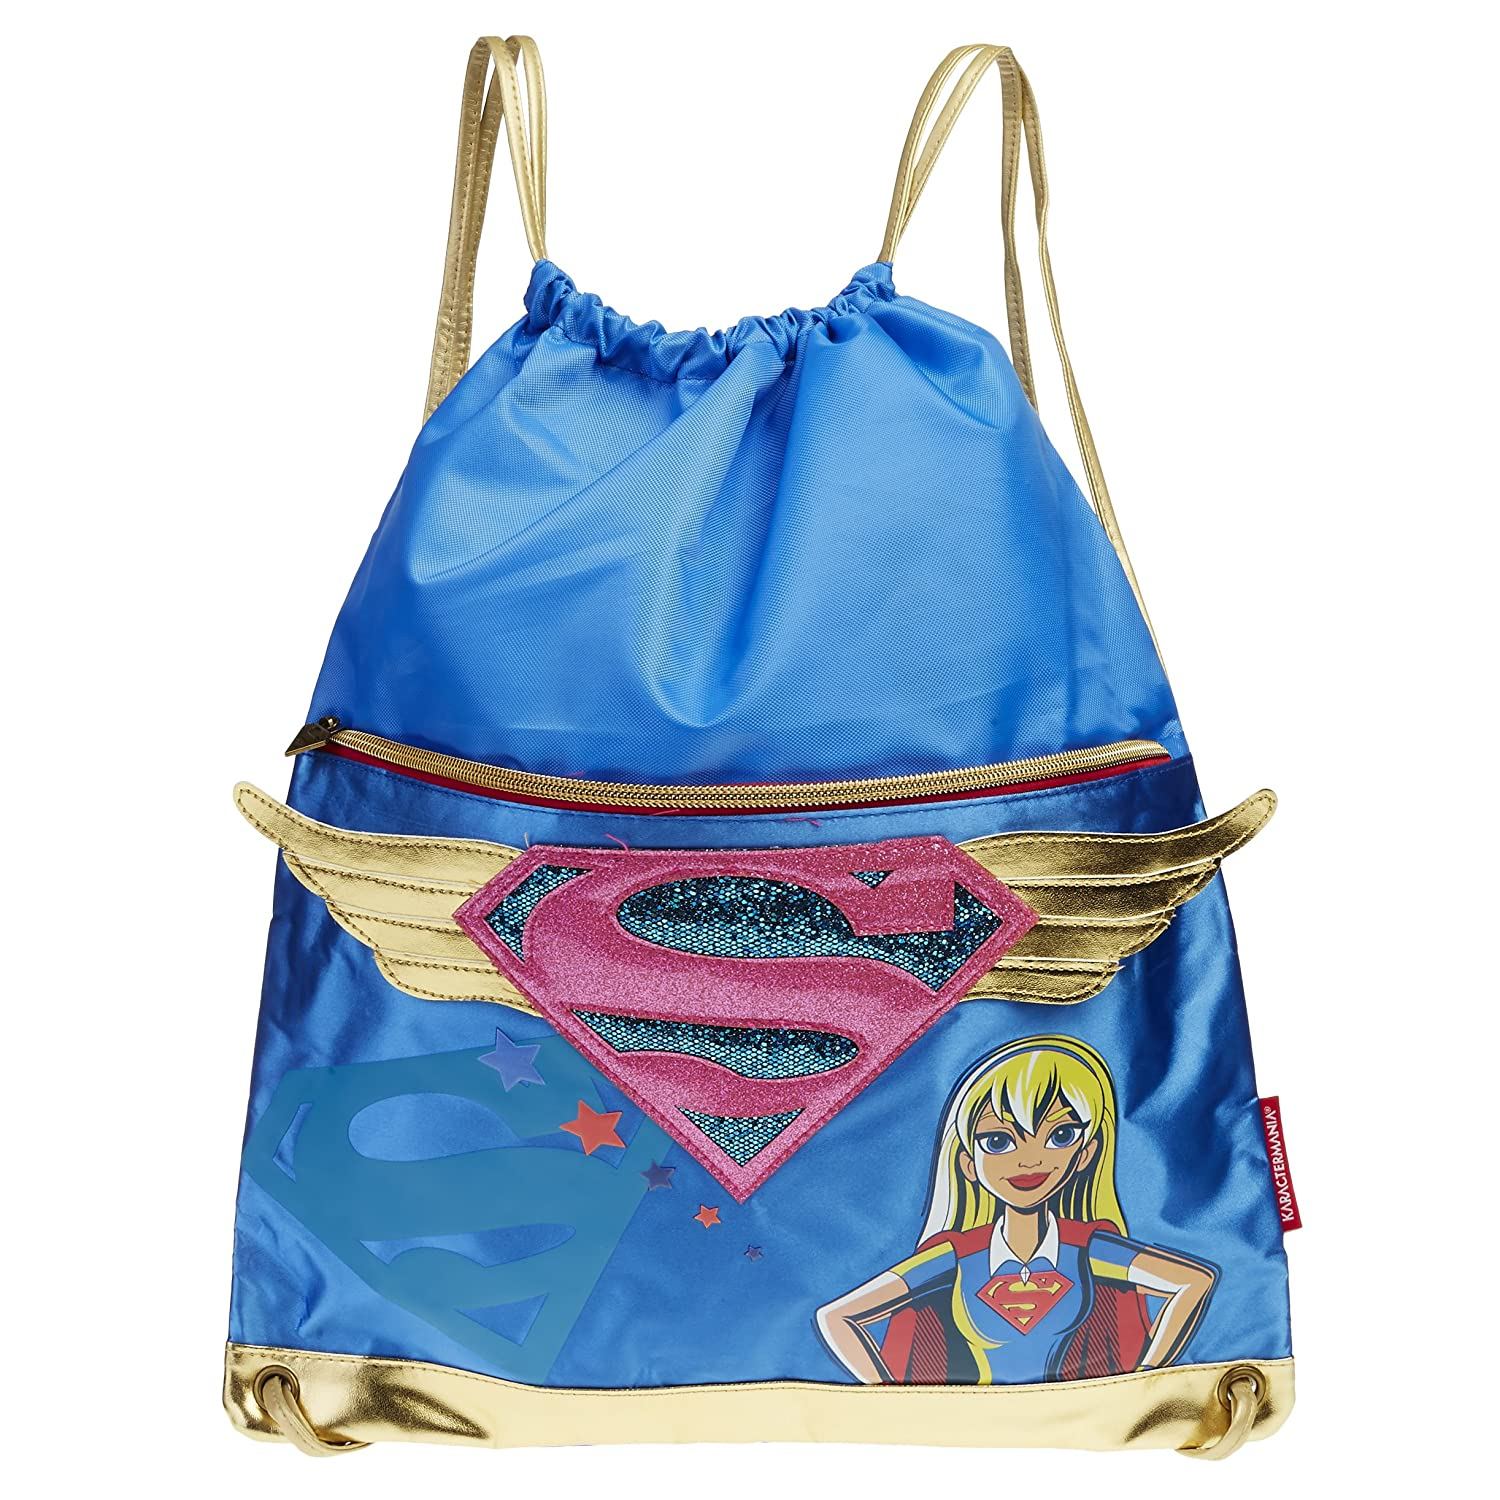 Karactermania 93919 DC Super Hero Girls Sacca, 41 cm, Blu